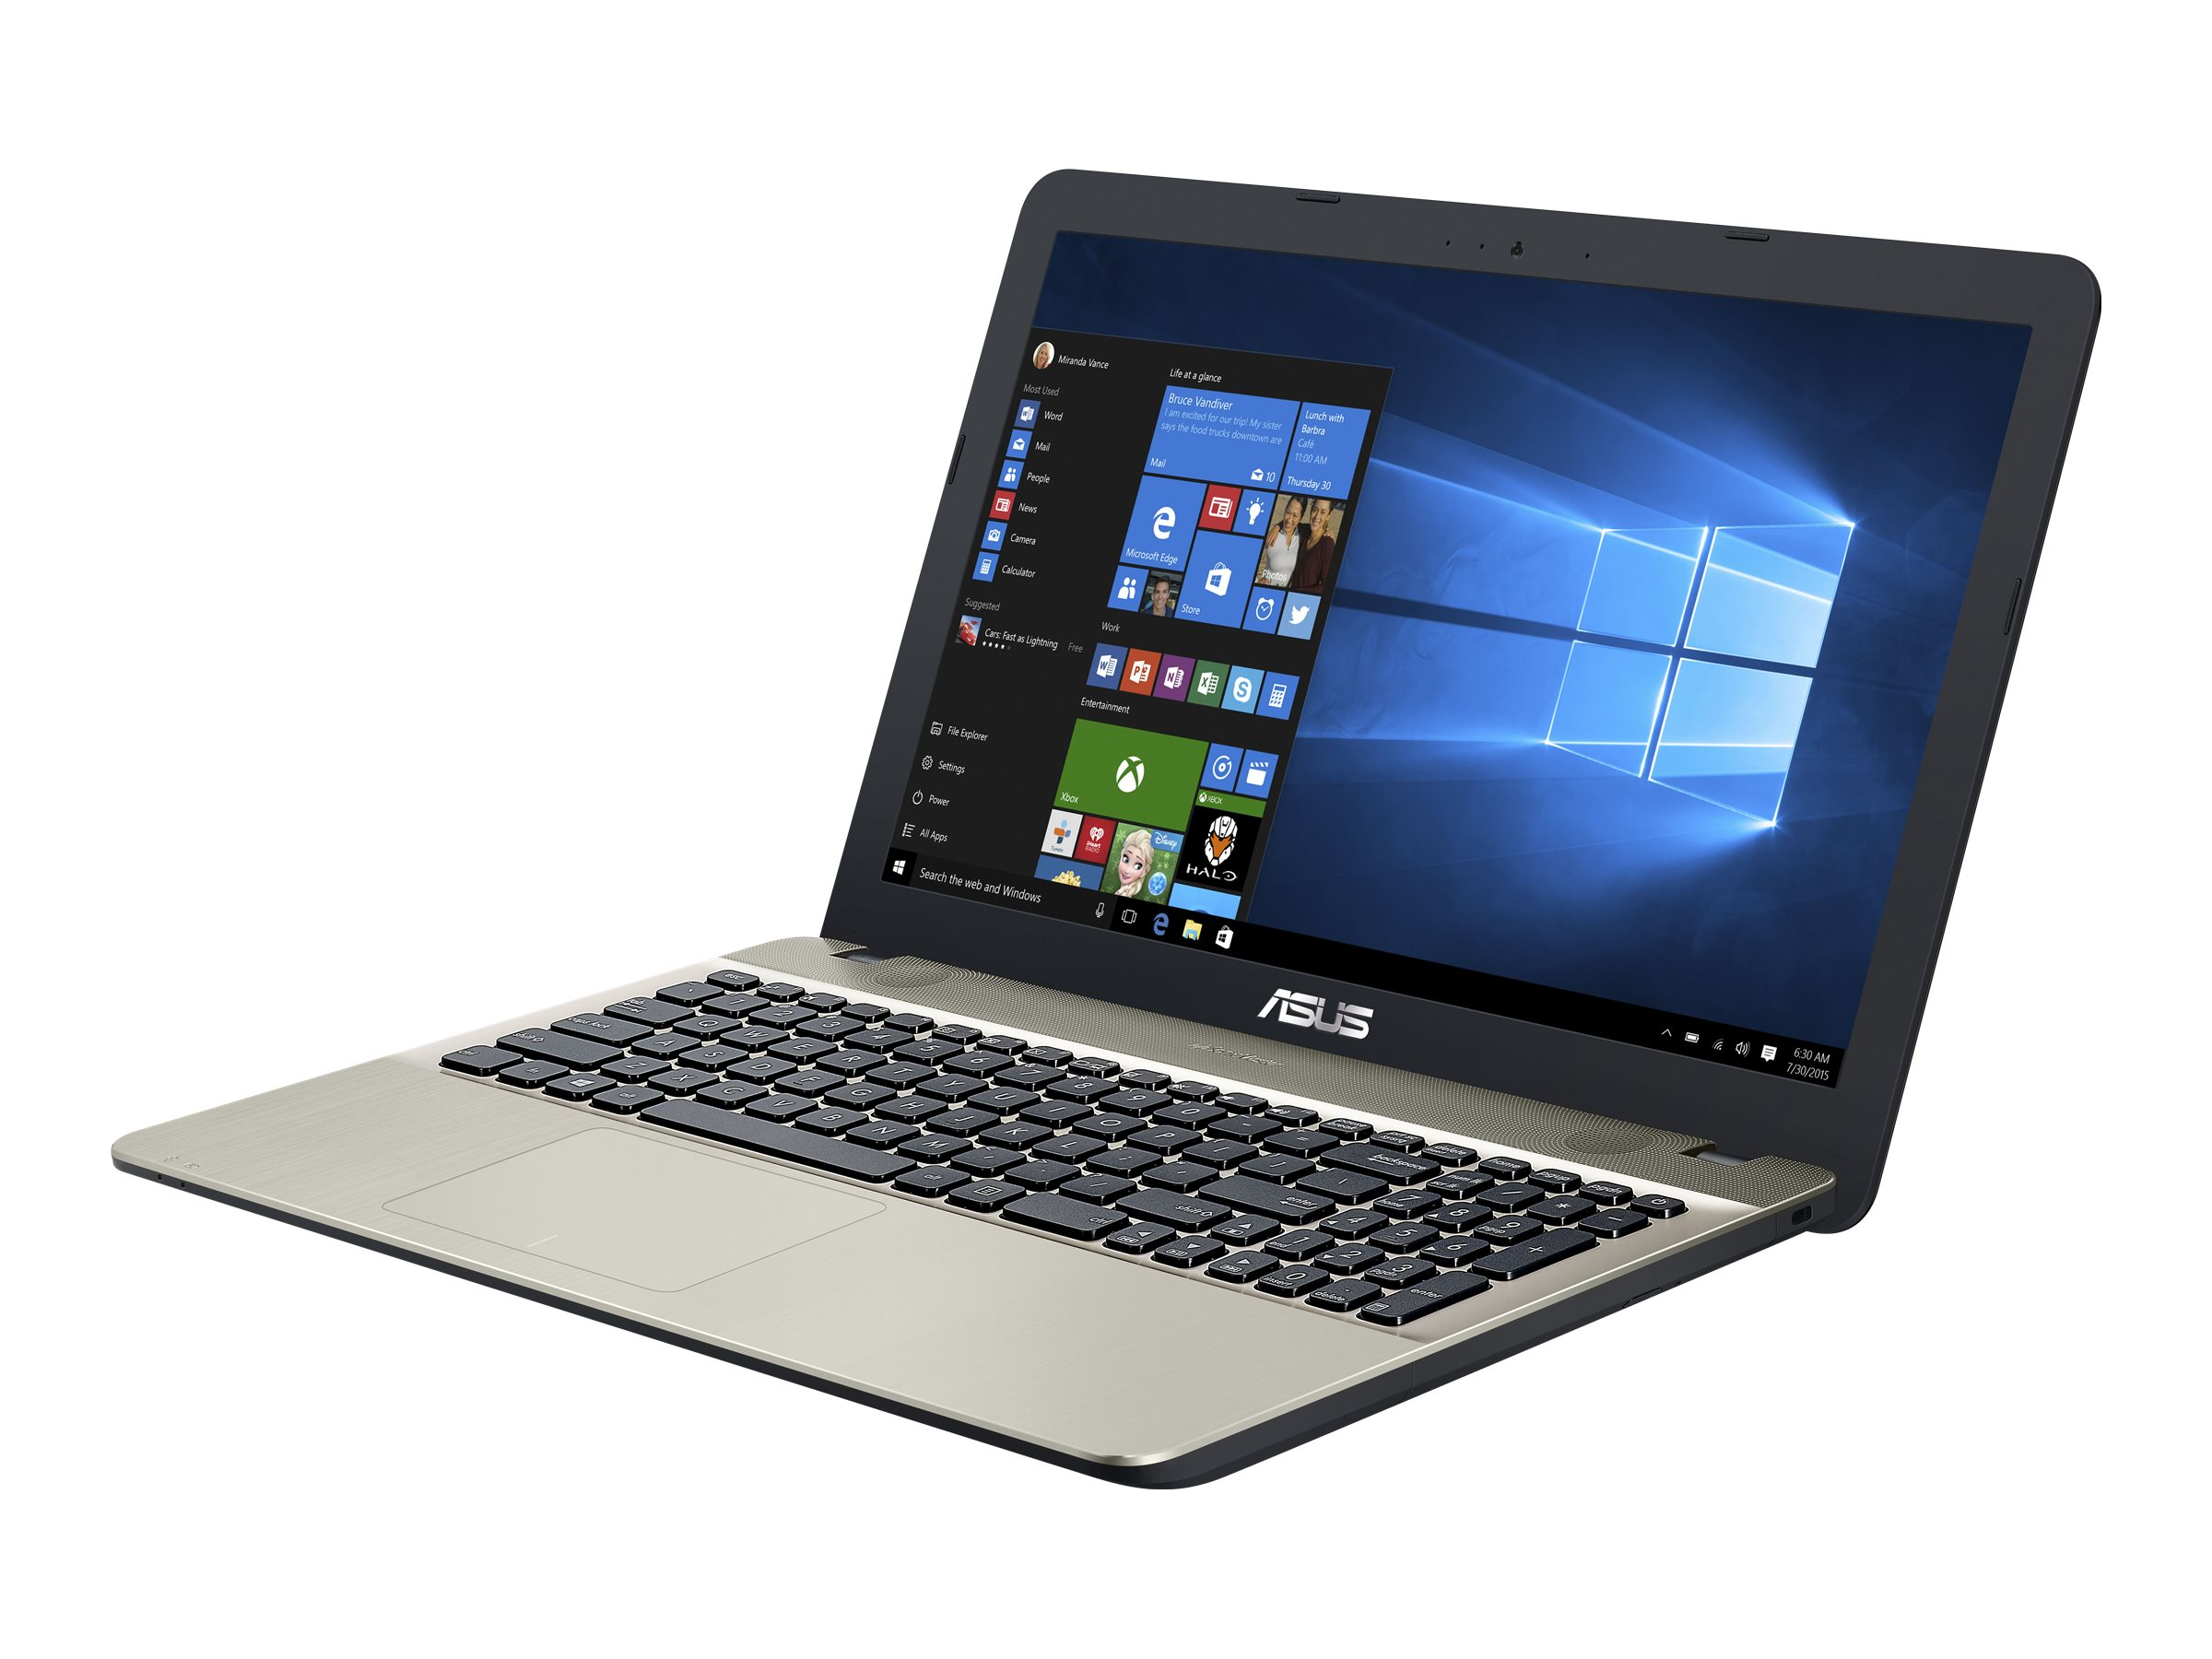 ASUS VivoBook Max P541UA GQ1859T - Core i3 6006U / 2 GHz - Win 10 Home 64-Bit - 8 GB RAM - 1 TB HDD - DVD SuperMulti